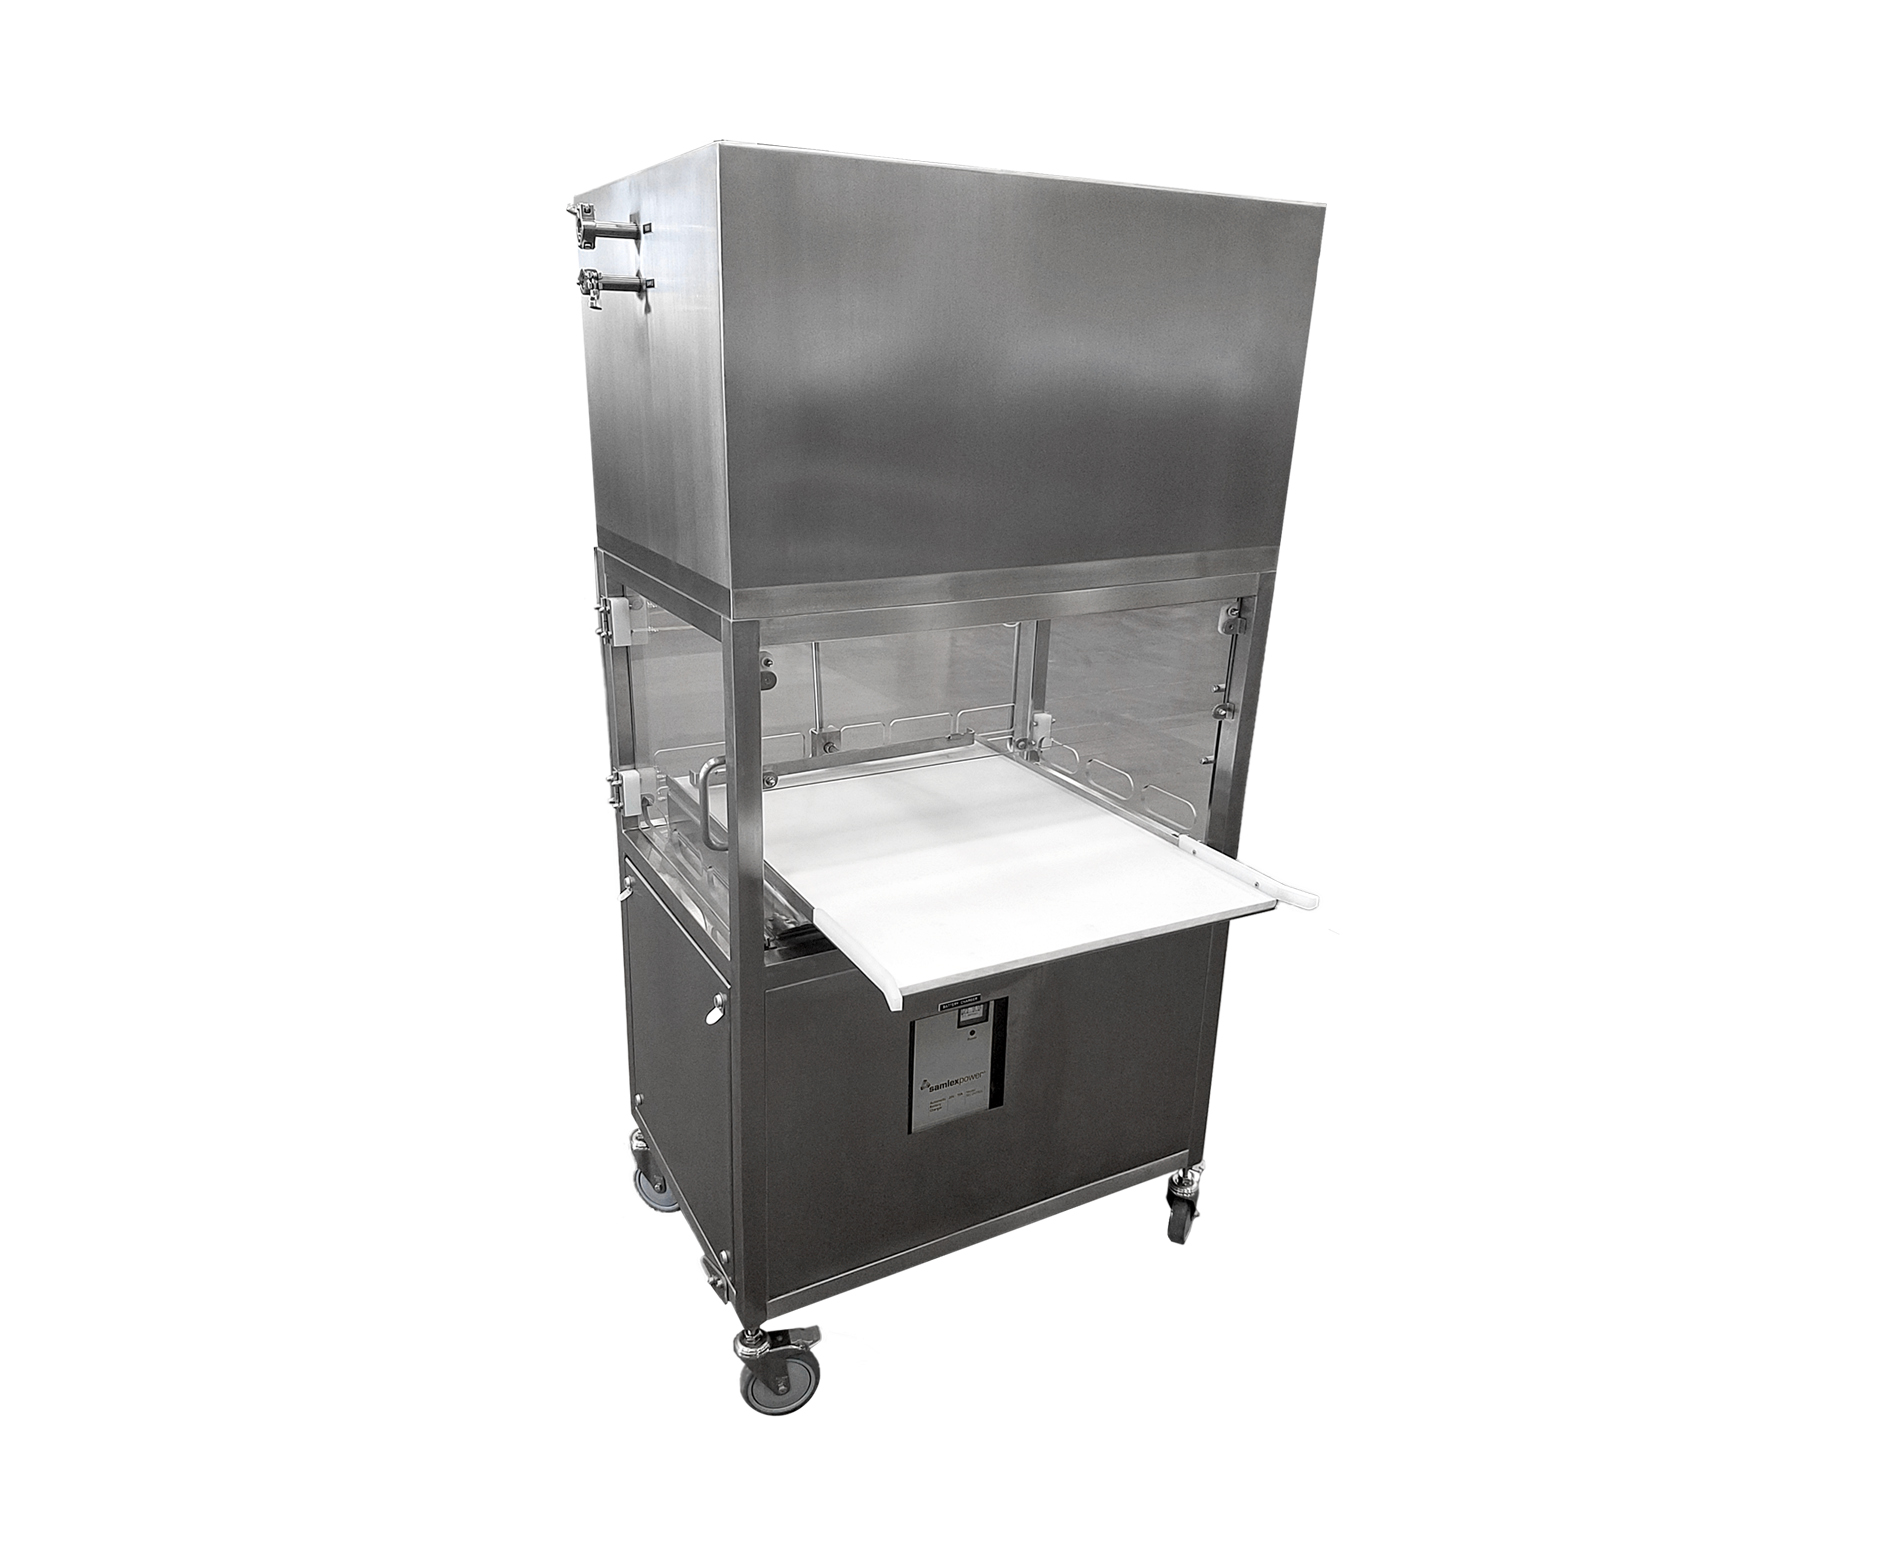 LFU CART2 - Containment Systems